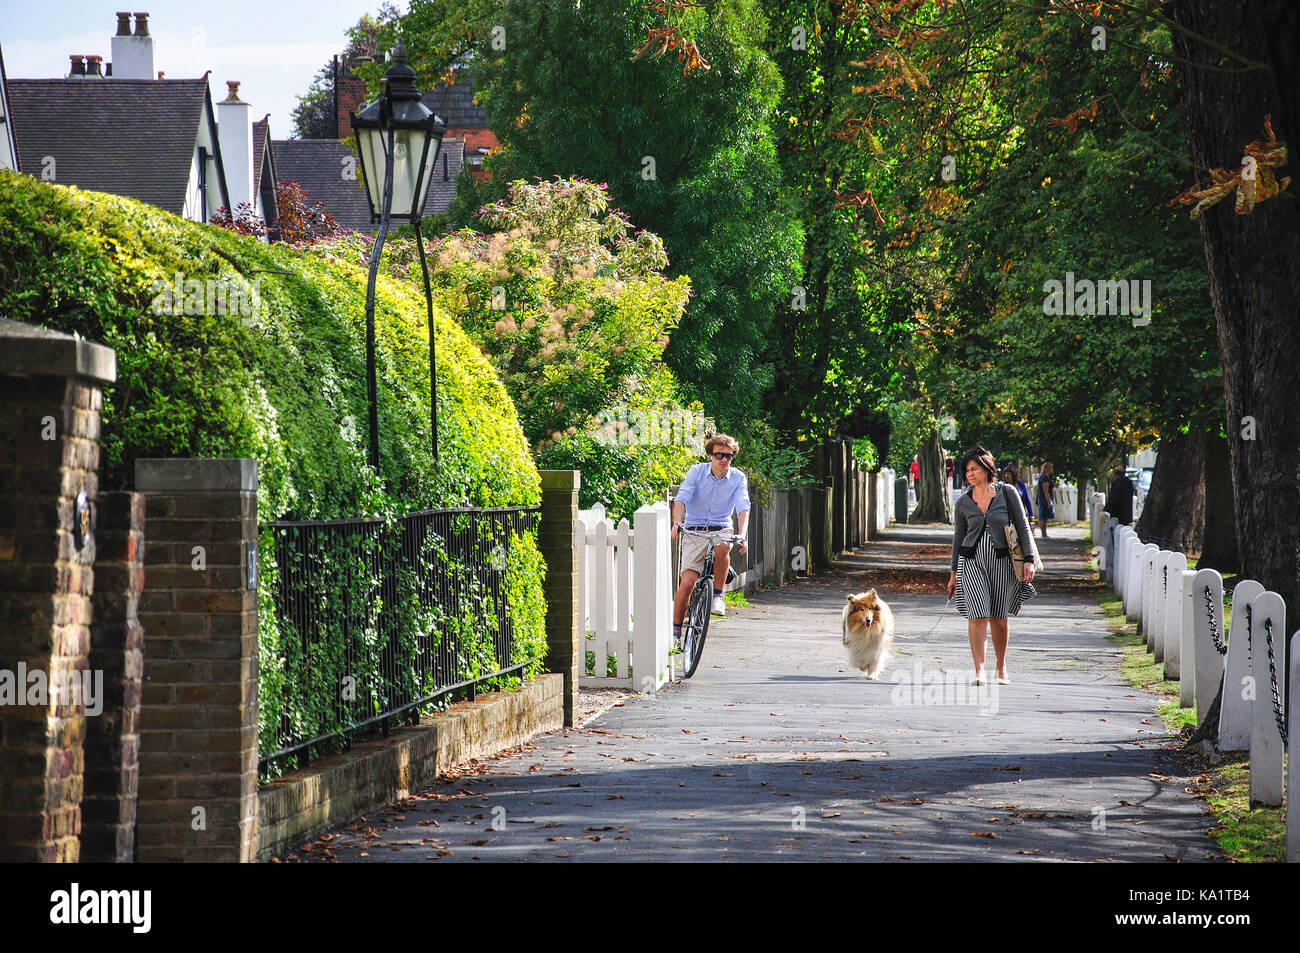 Dulwich Village, Dulwich, London Borough of Southwark, London, Greater London, England, United Kingdom Stock Photo